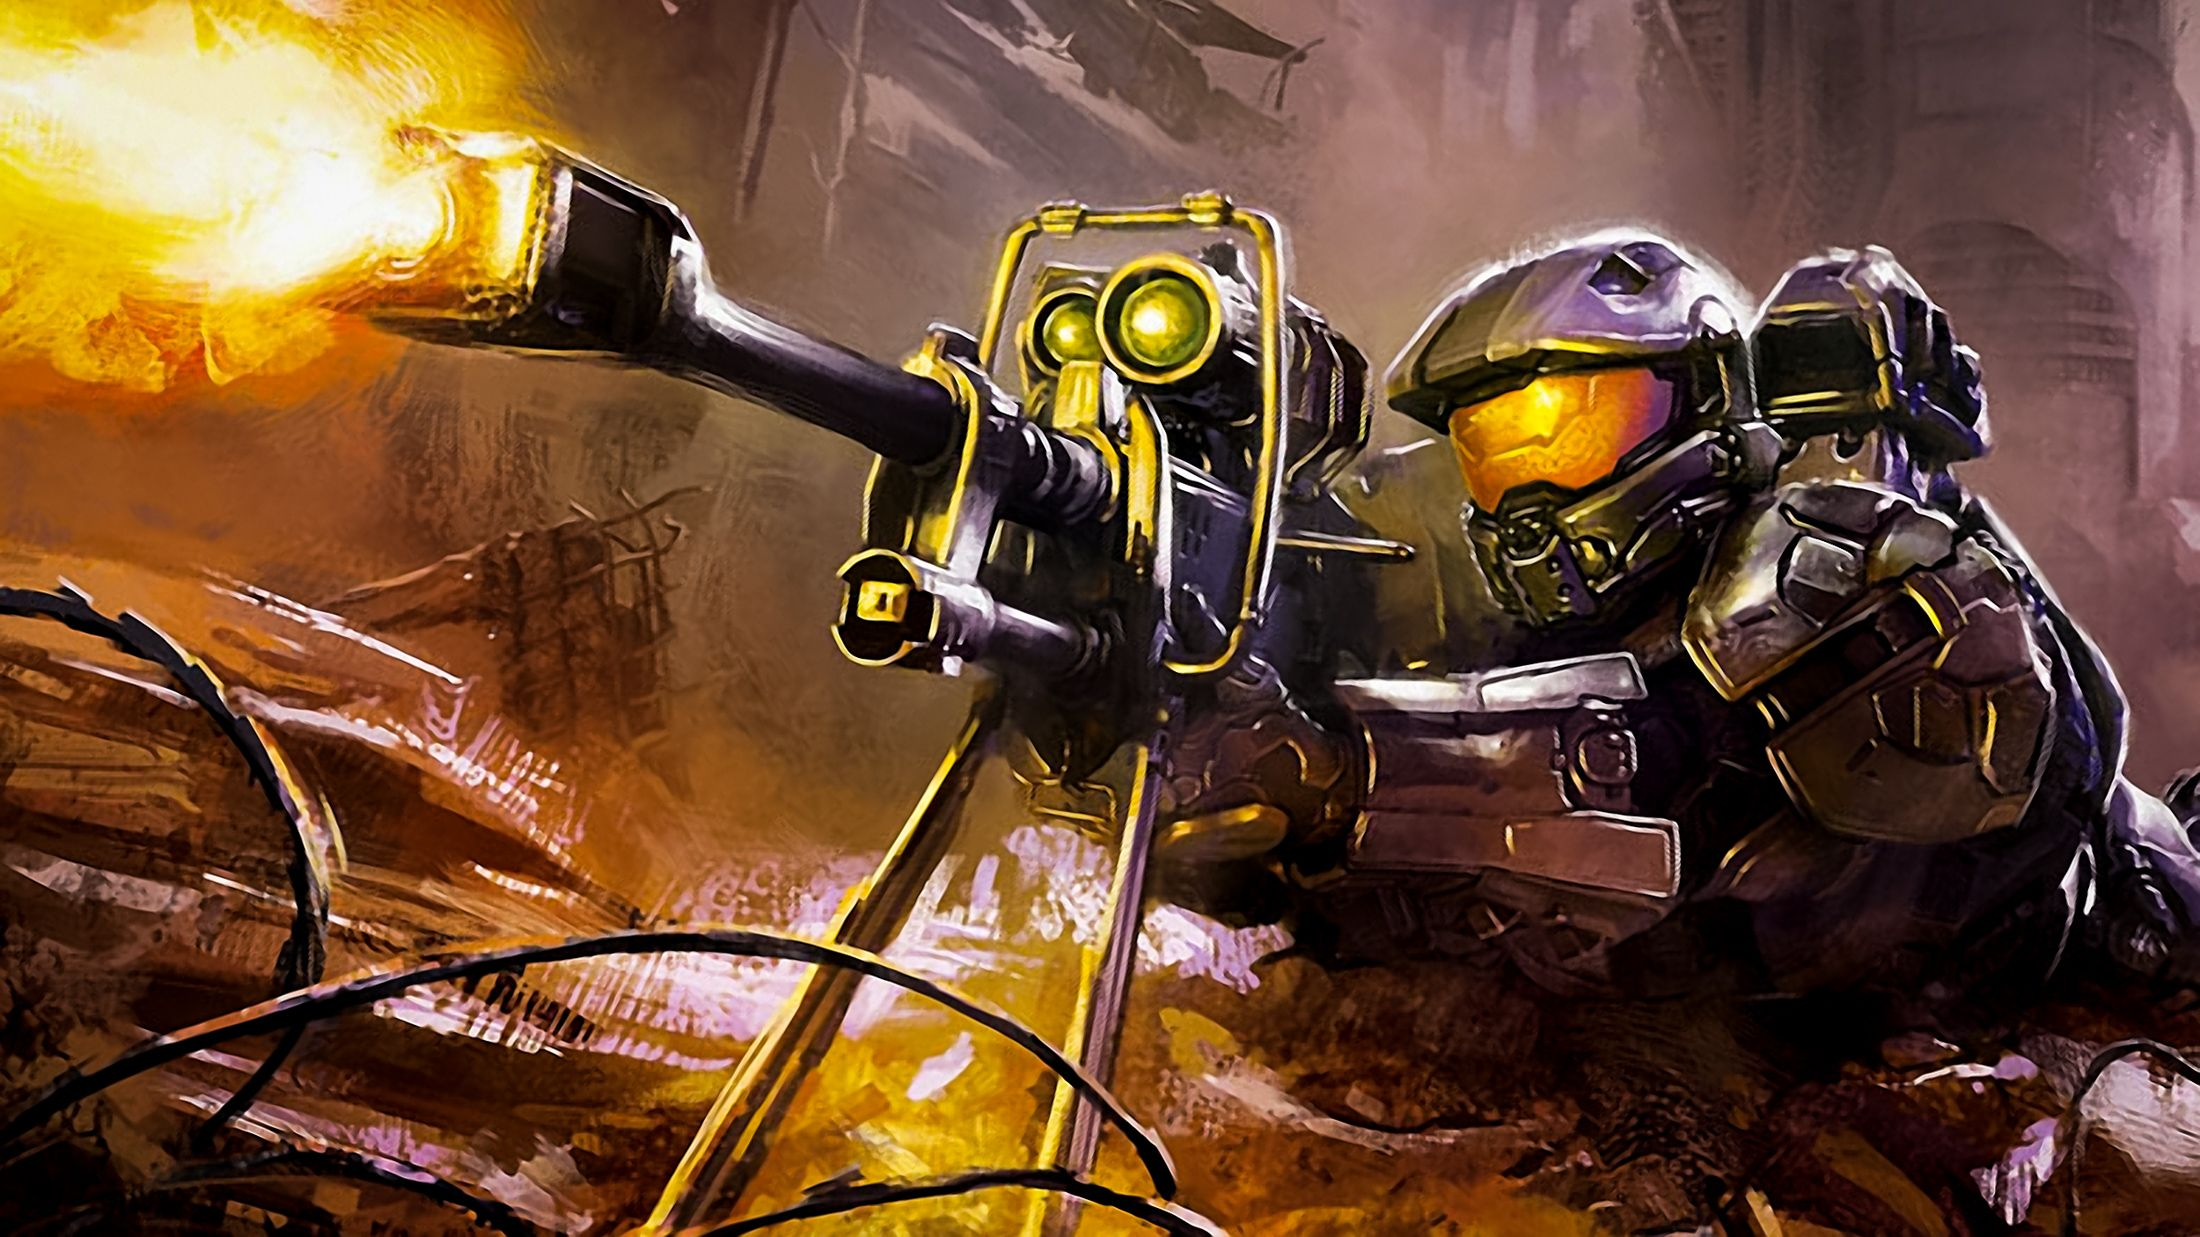 Halo Master Chief Wallpaper Google Search Halo Backgrounds Halo 5 Guardians Halo Master Chief